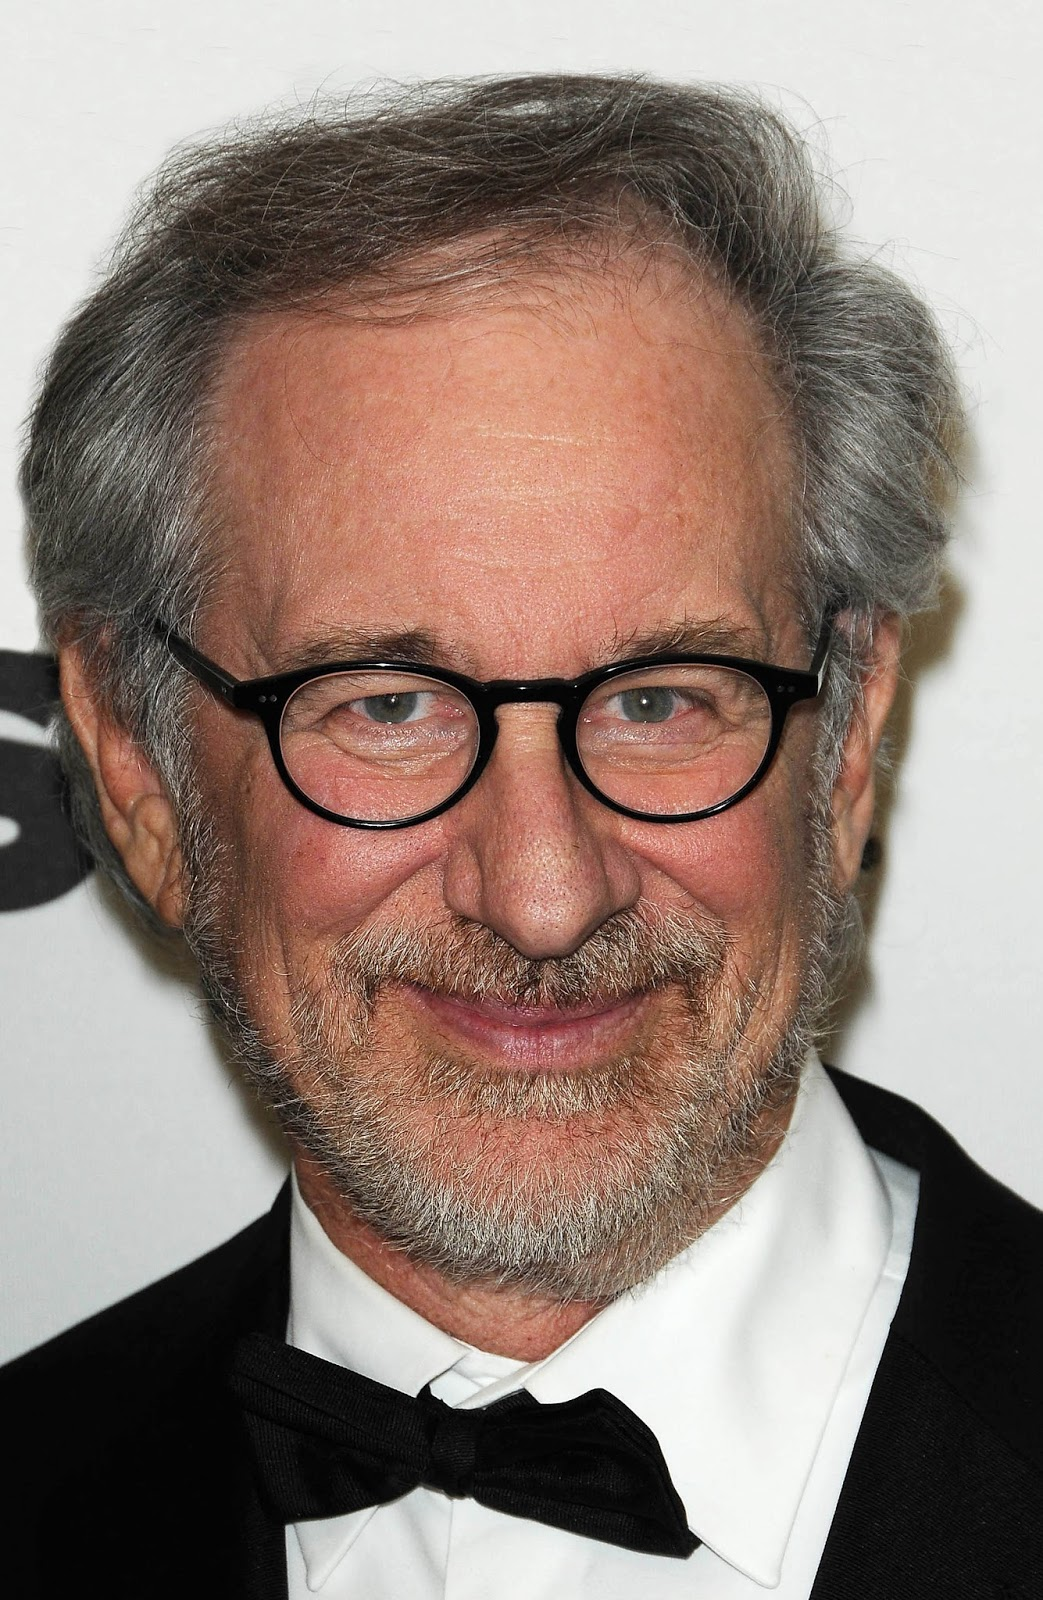 how does the director stephen spielberg Does steven spielberg actually direct movies, as in showing up every day and working all day or is it pretty much left up to assistant directors and others, and he just banks his brand matt burwood , director, cinematographer, editor.